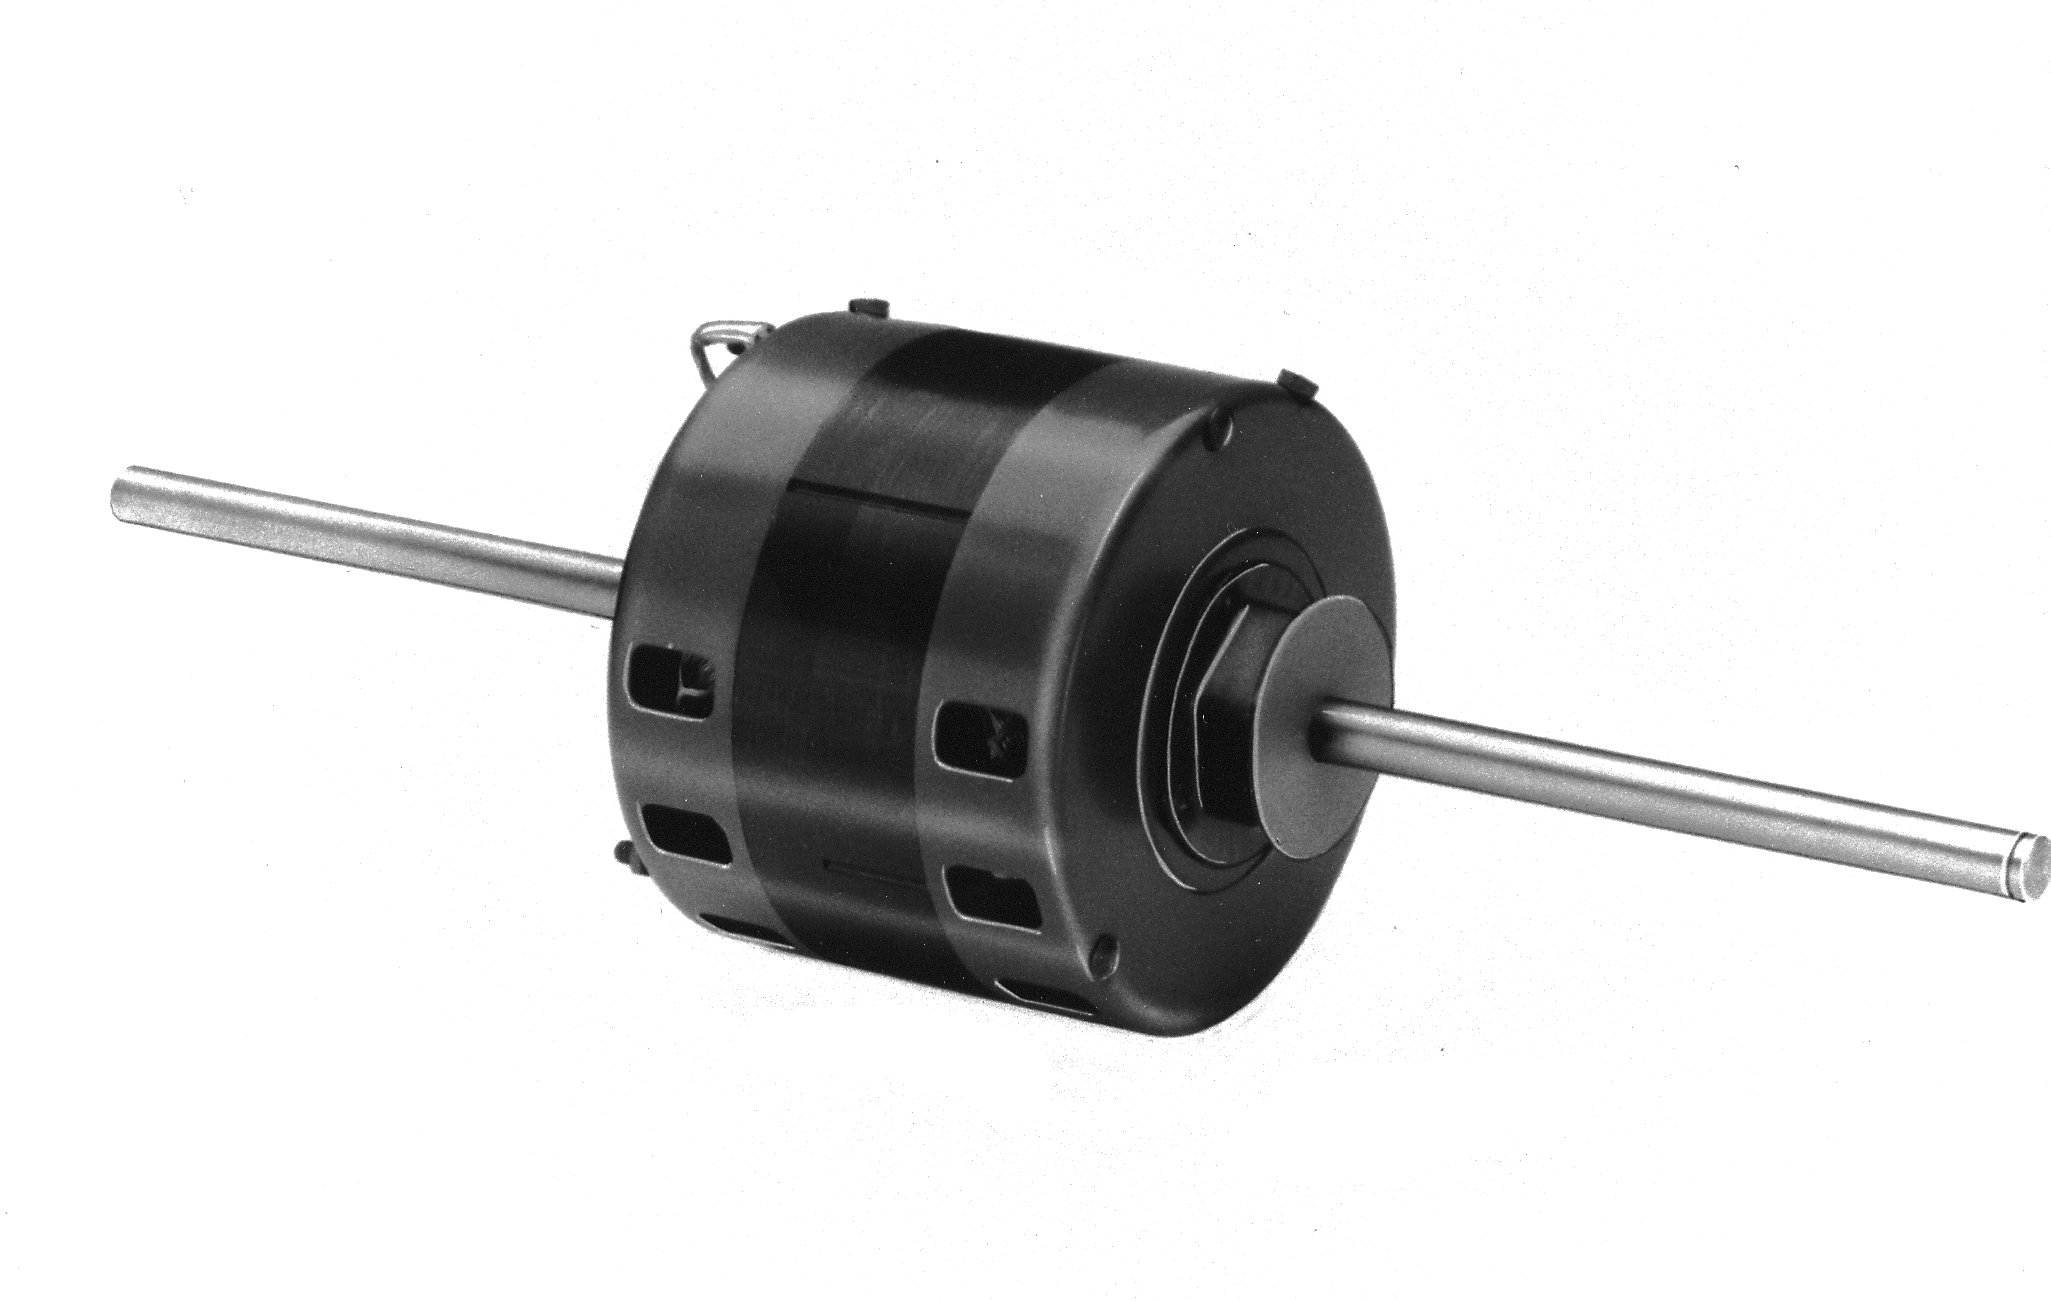 Fasco D1042 5'' Frame Permanent Split Capacitor York Open Ventilated OEM Replacement Motor with Sleeve Bearing, 1/5HP, 1075rpm, 208-230V, 60 Hz, 1.2amps